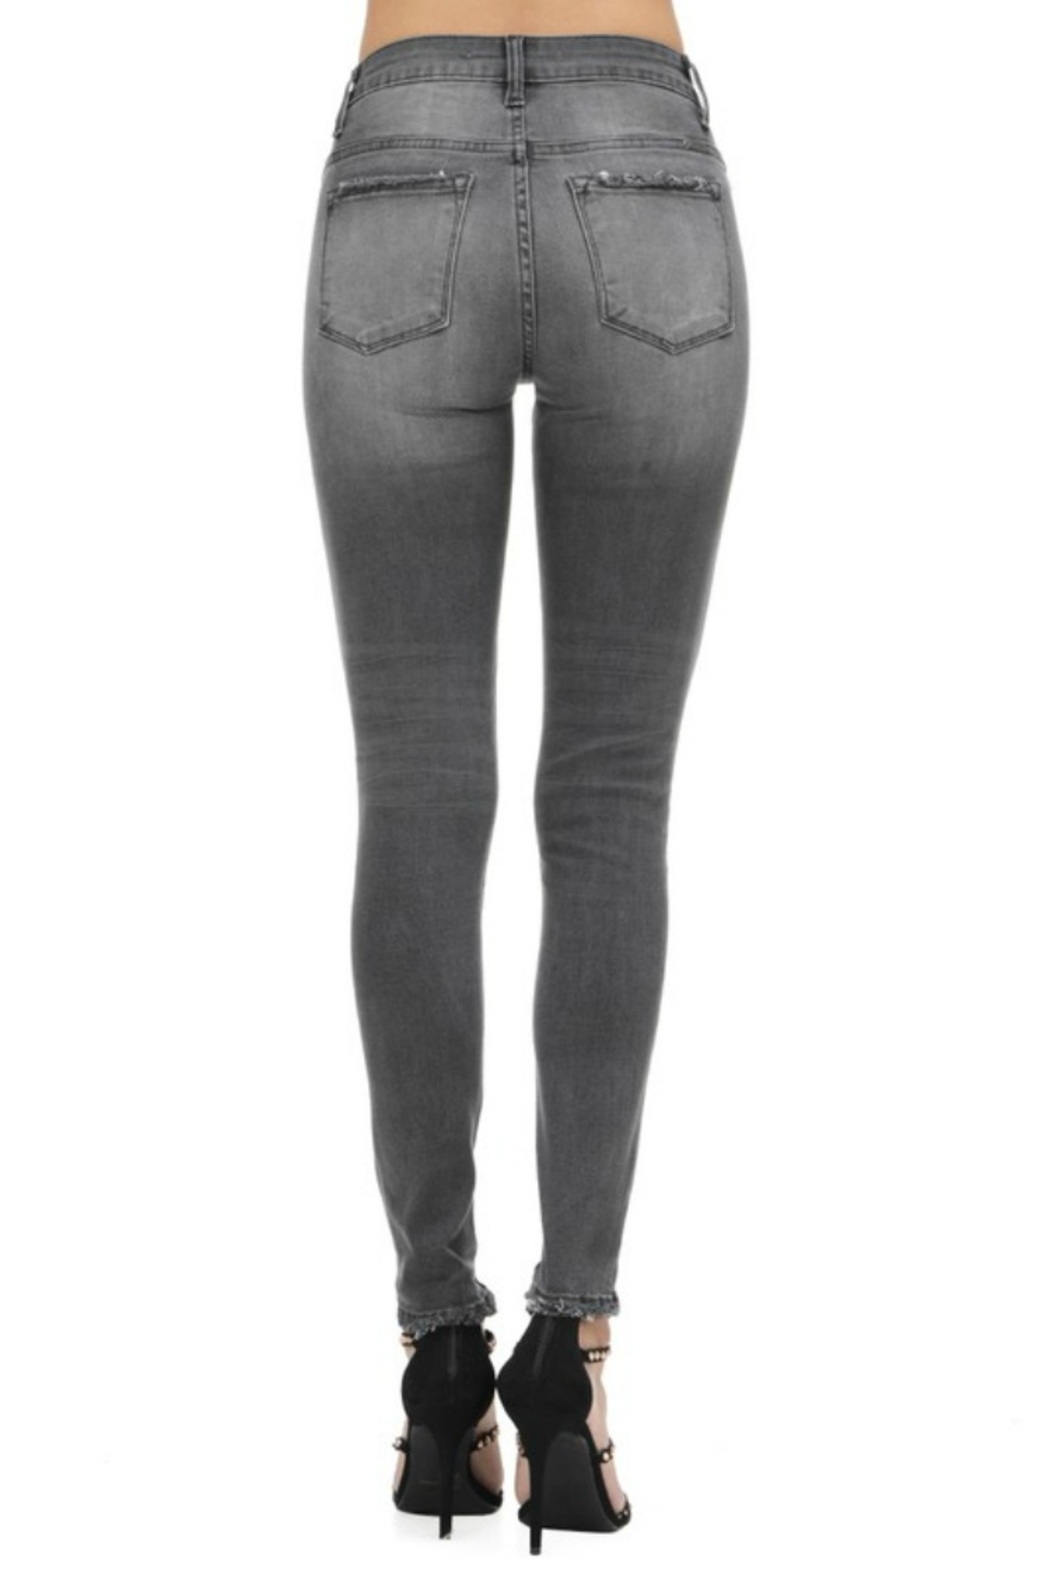 Kan Can GREY HIGH RISE SKINNY - Back Cropped Image